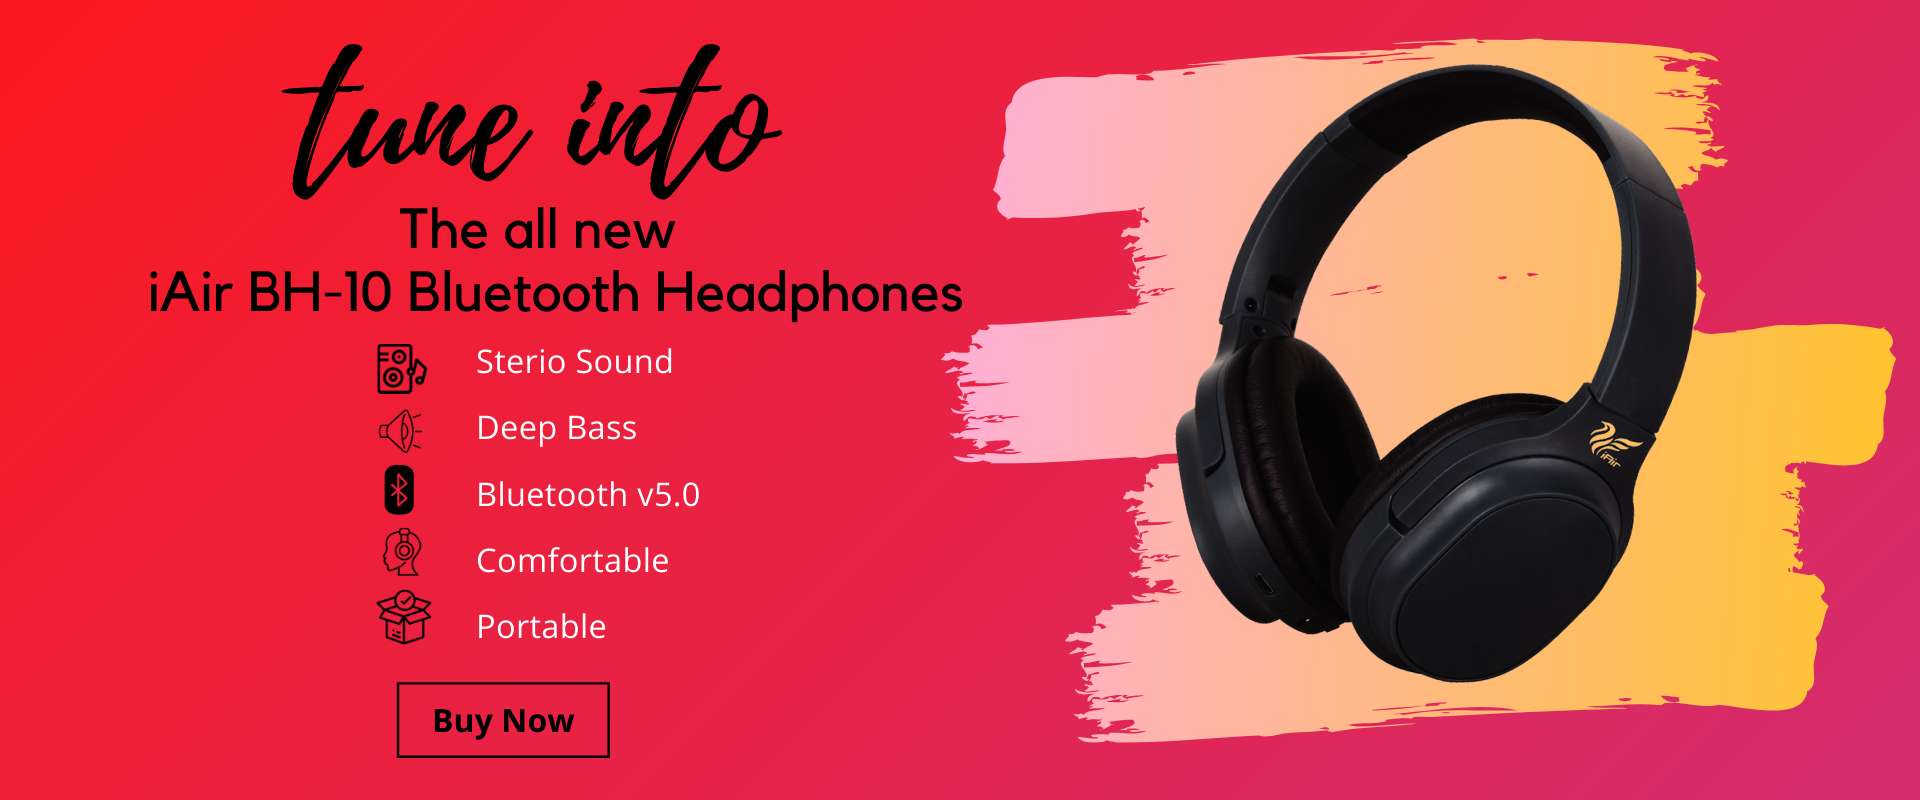 BH-10 Over the ear Bluetooth Headphones